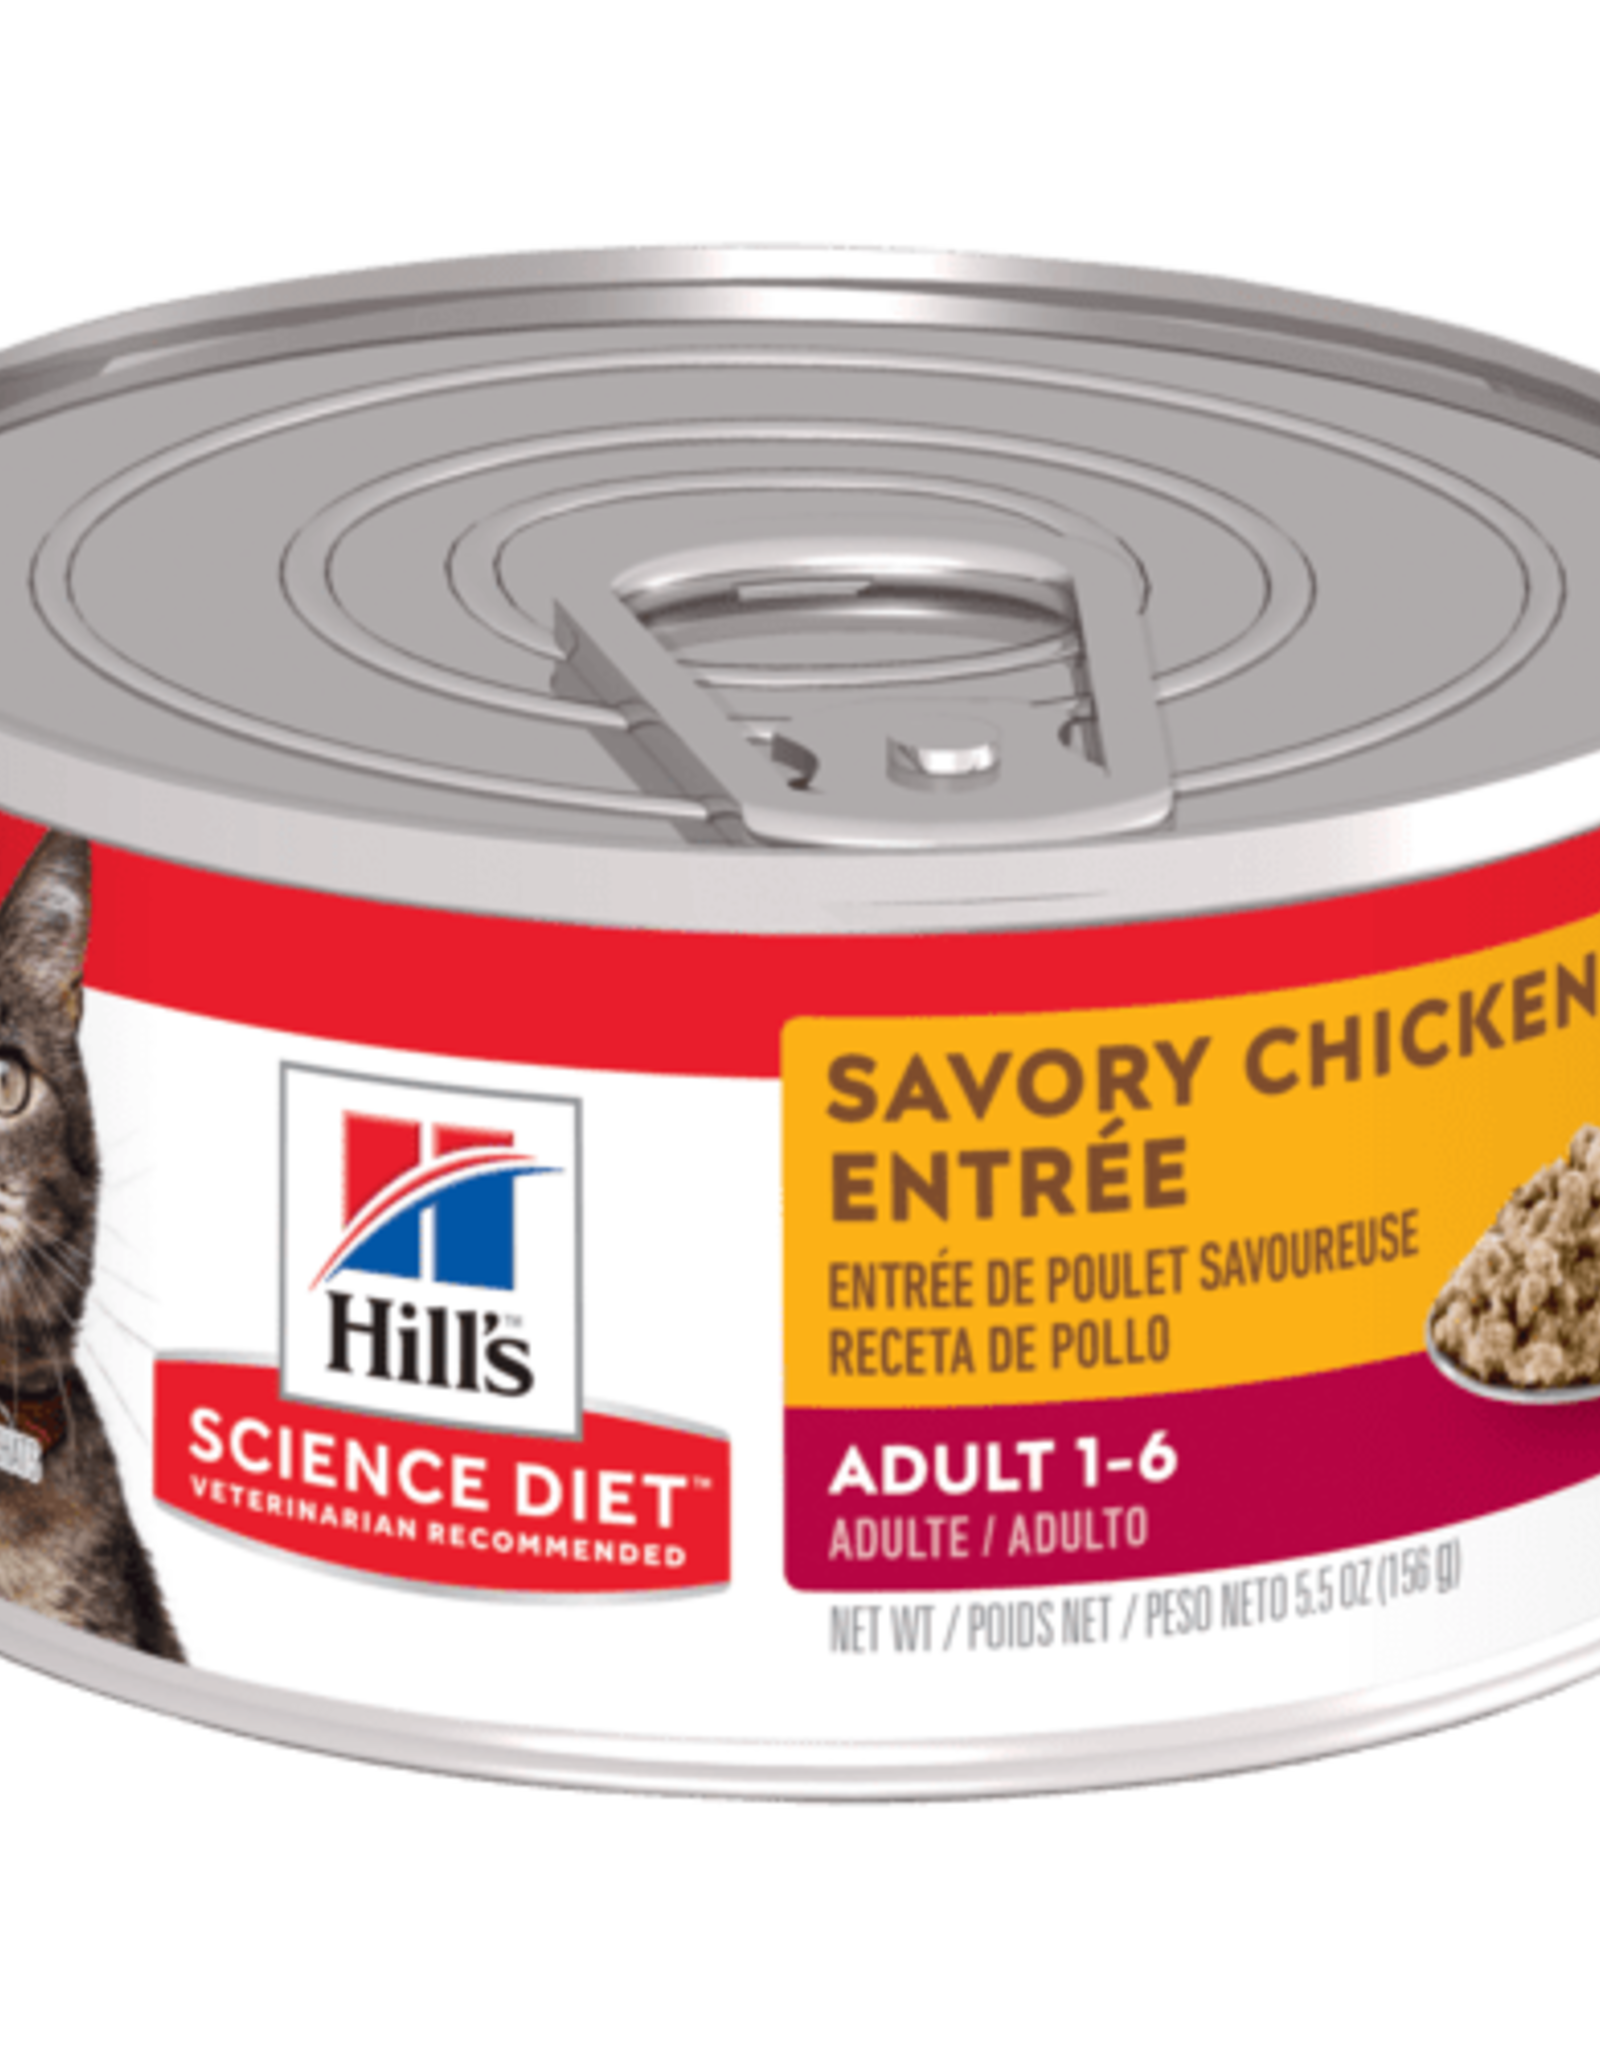 Hill's Science Diet Hill's Science Diet Feline Can Savory Chicken Entree 1-6 156g